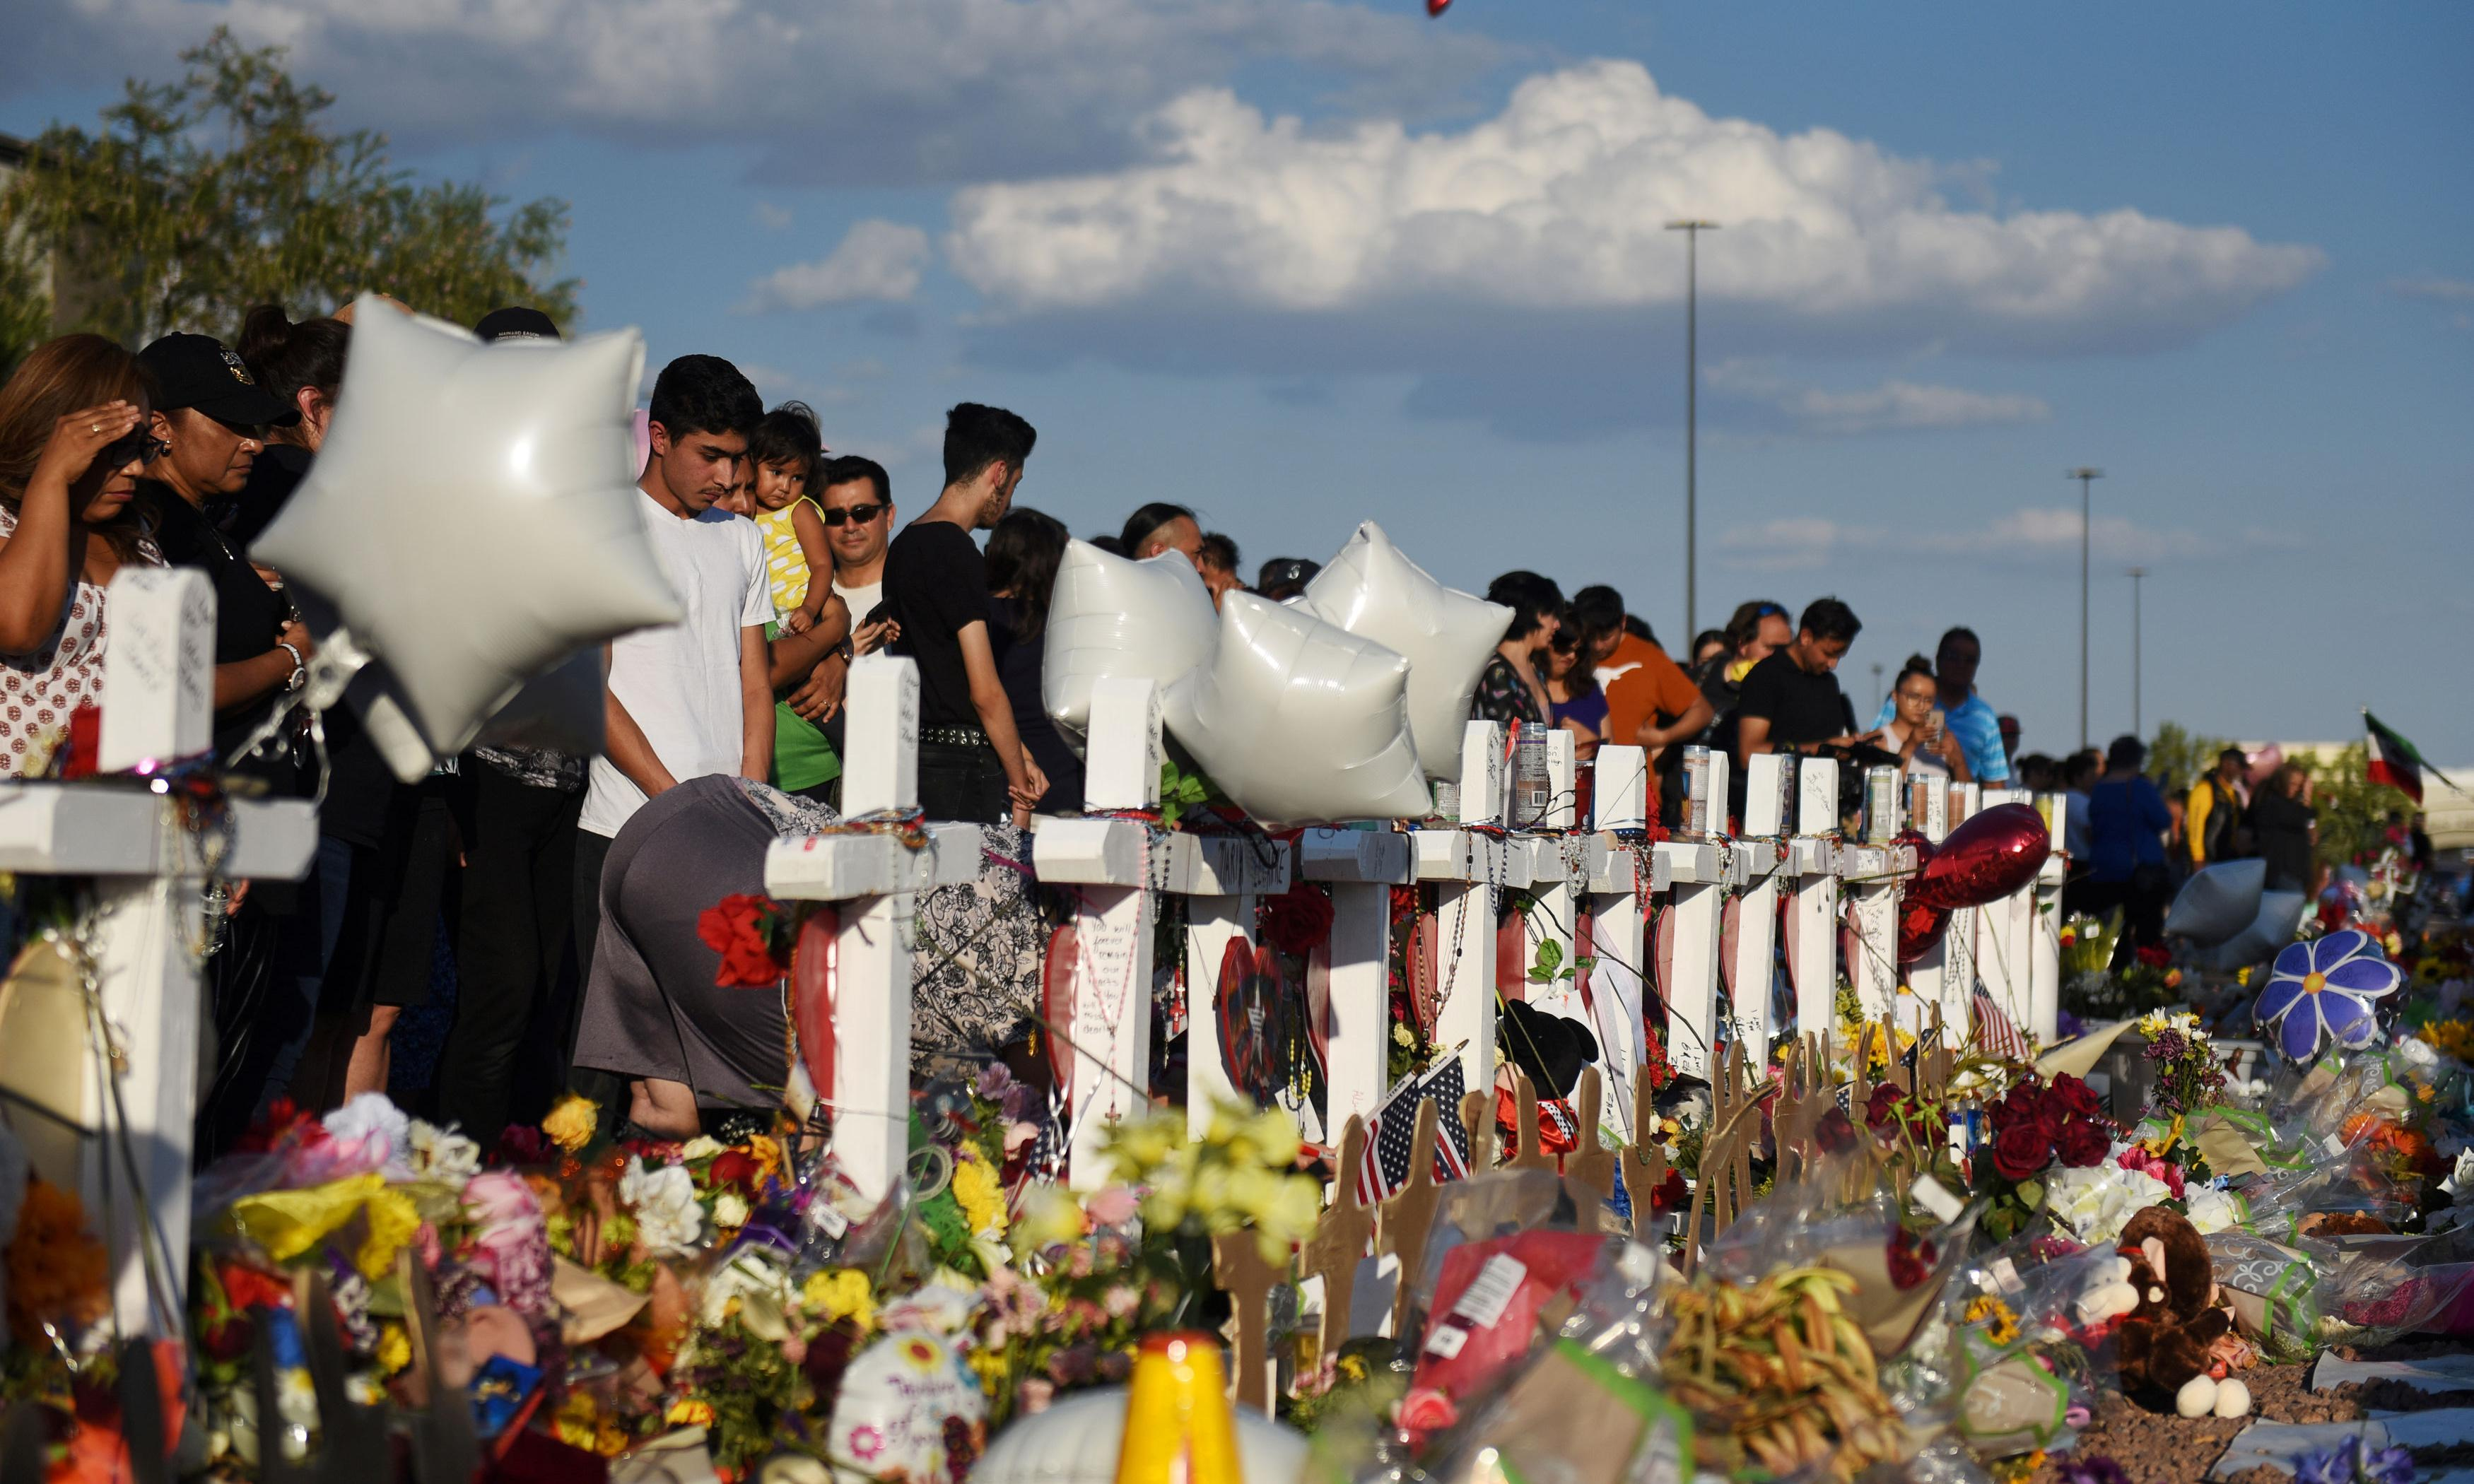 Words matter. Trump bears a responsibility for El Paso